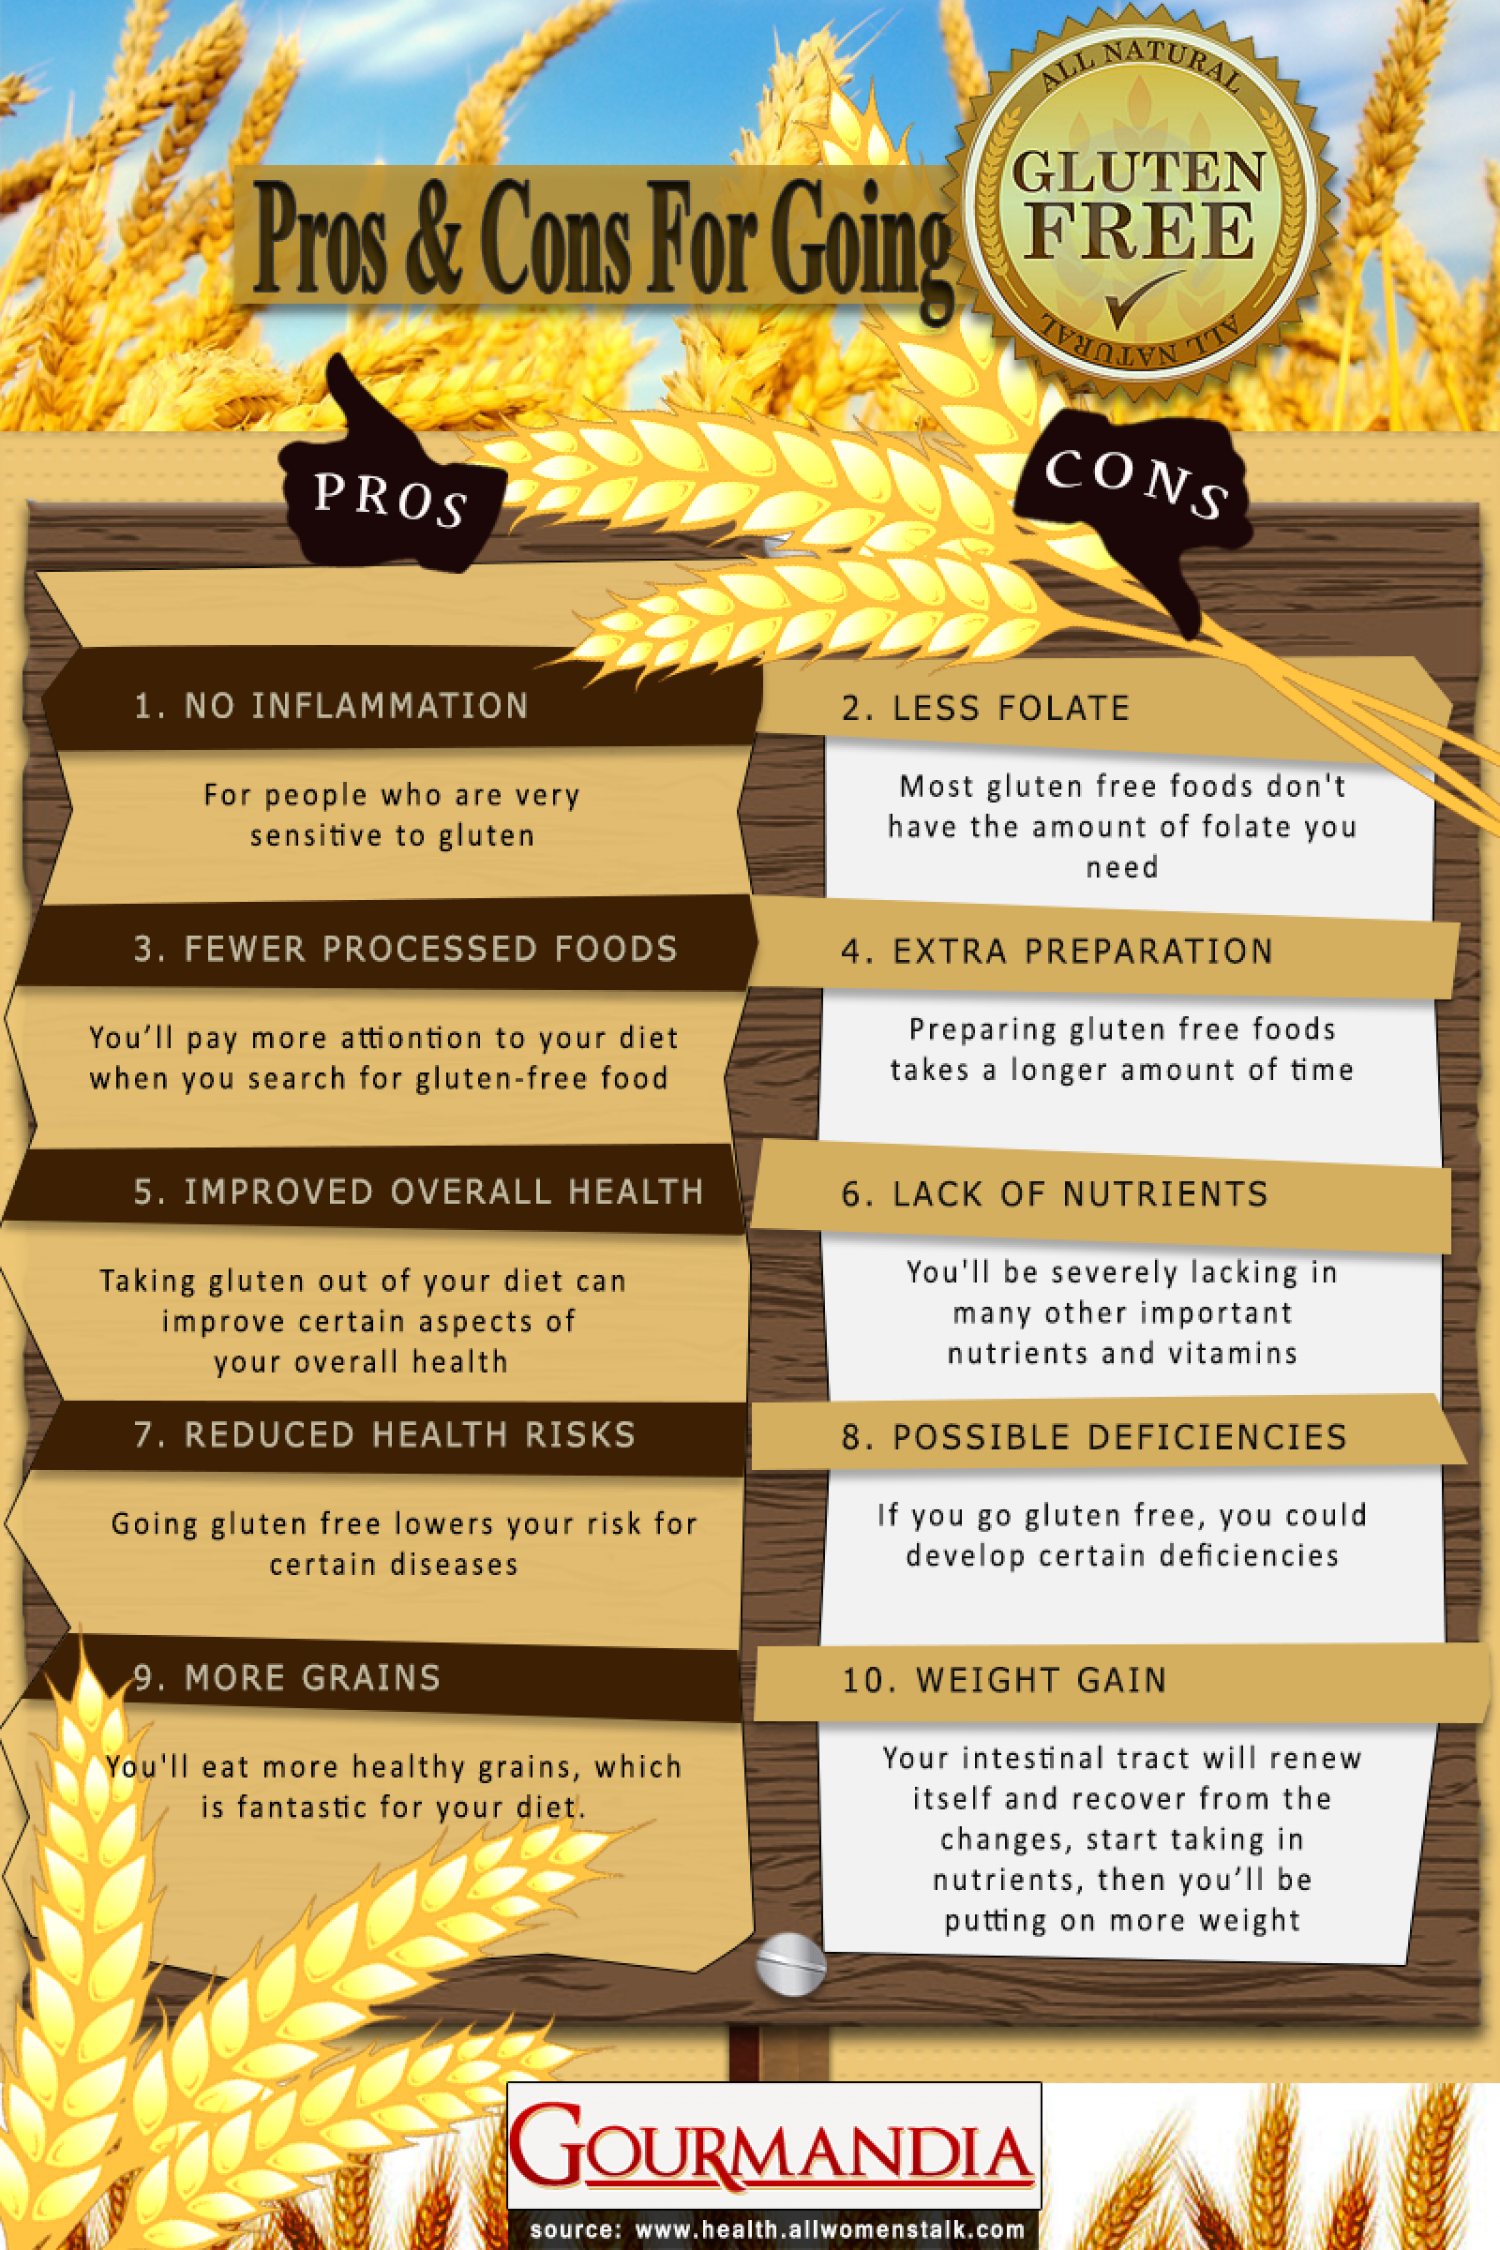 Pros and Cons For Going Gluten Free Infographic